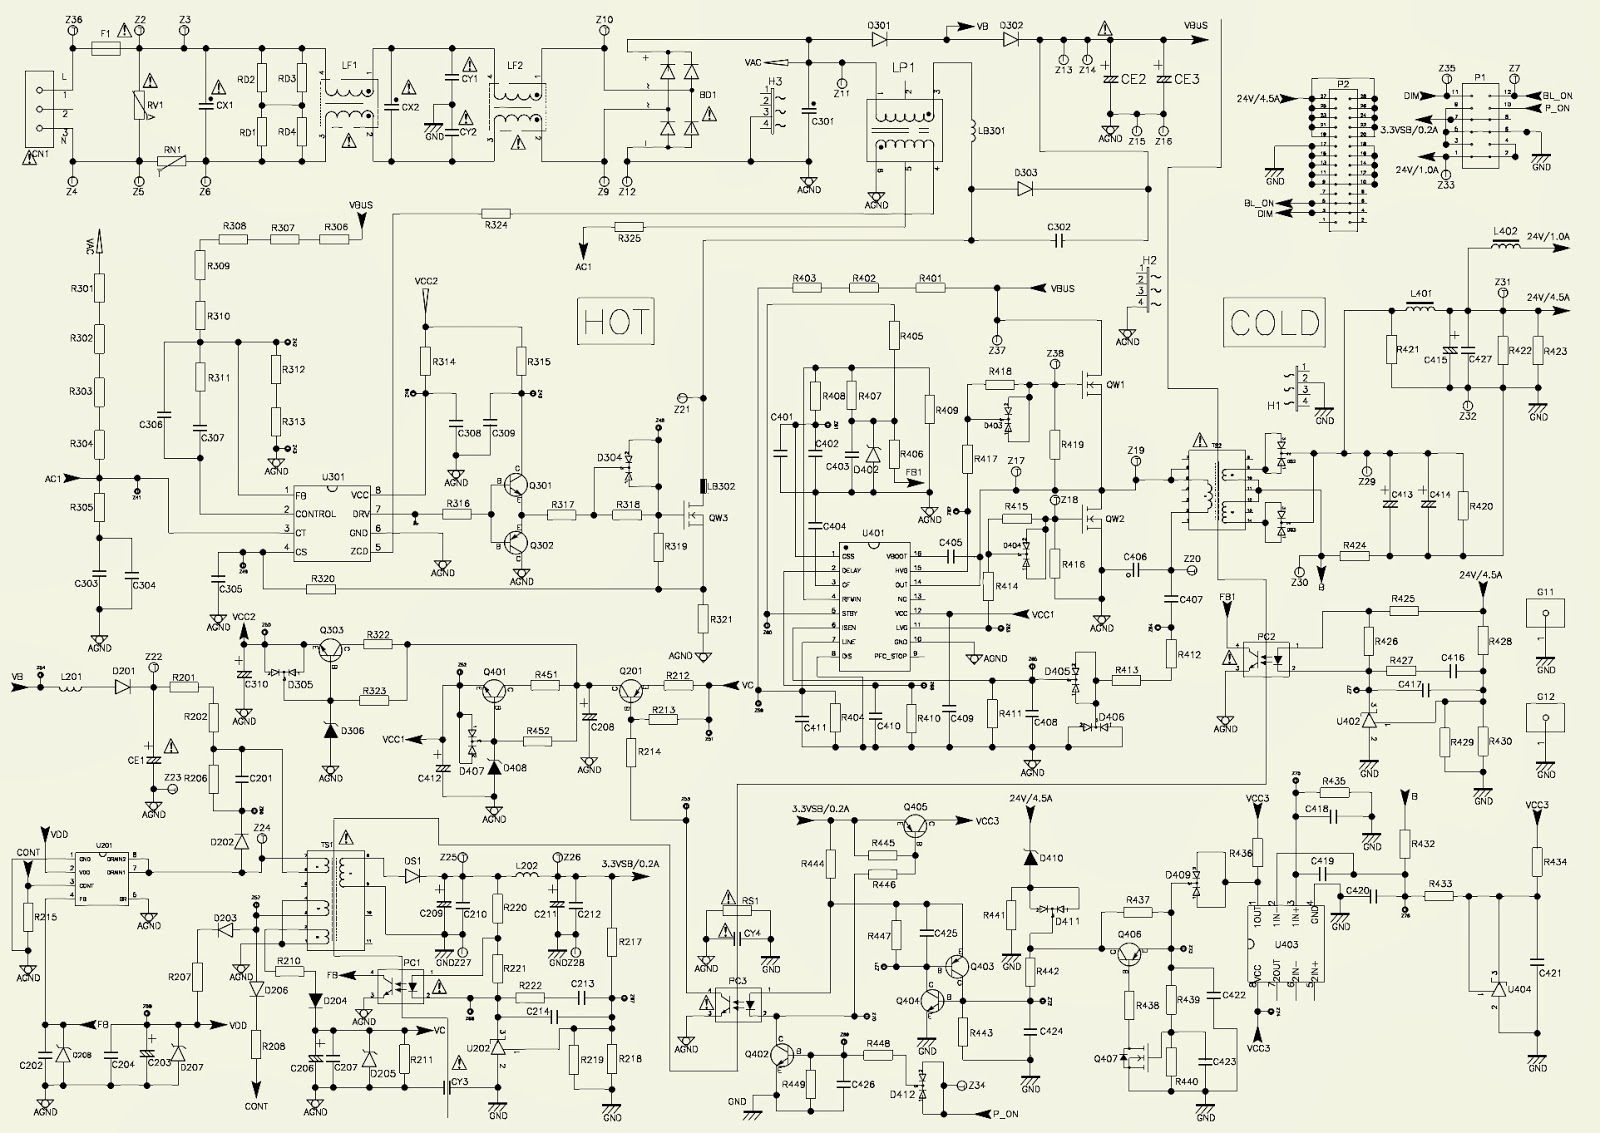 Charming Smps Repairing Guide Ideas - Wiring Diagram Ideas ...